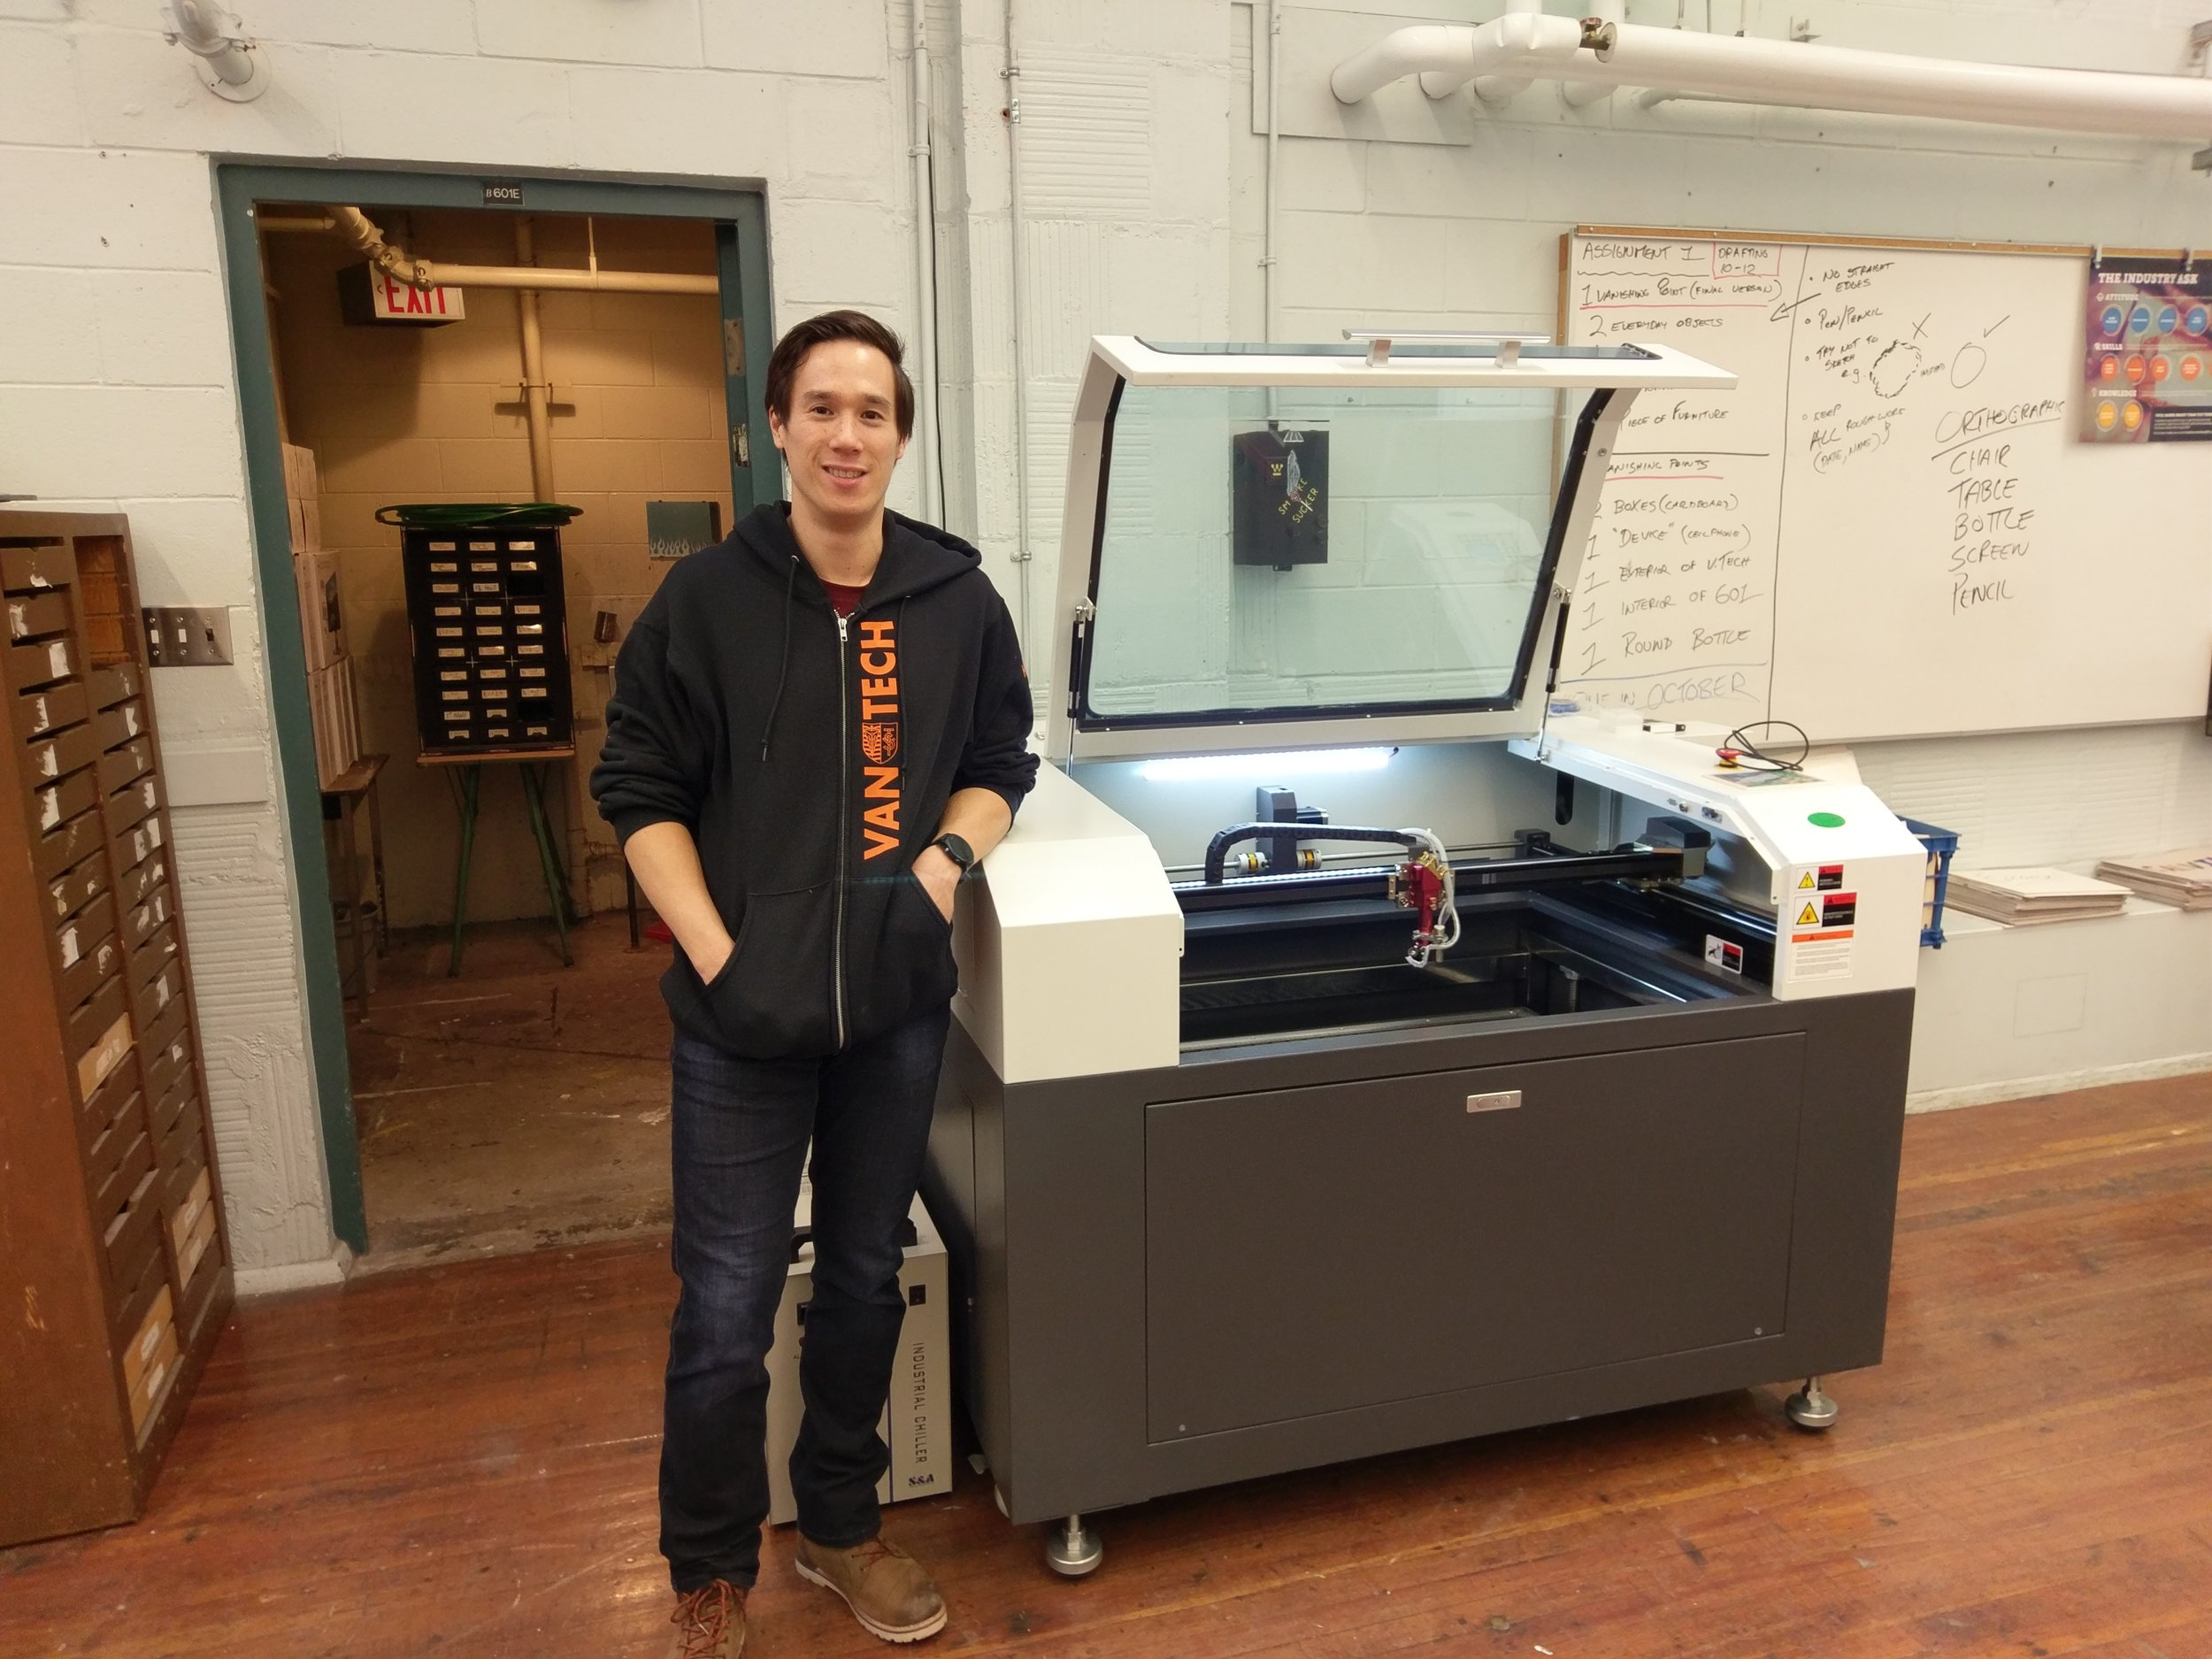 Vancouver Technical Secondary - Machine: SP-9006S 80wattYear: 2017/18Business/Use: Teaching the next generation of students